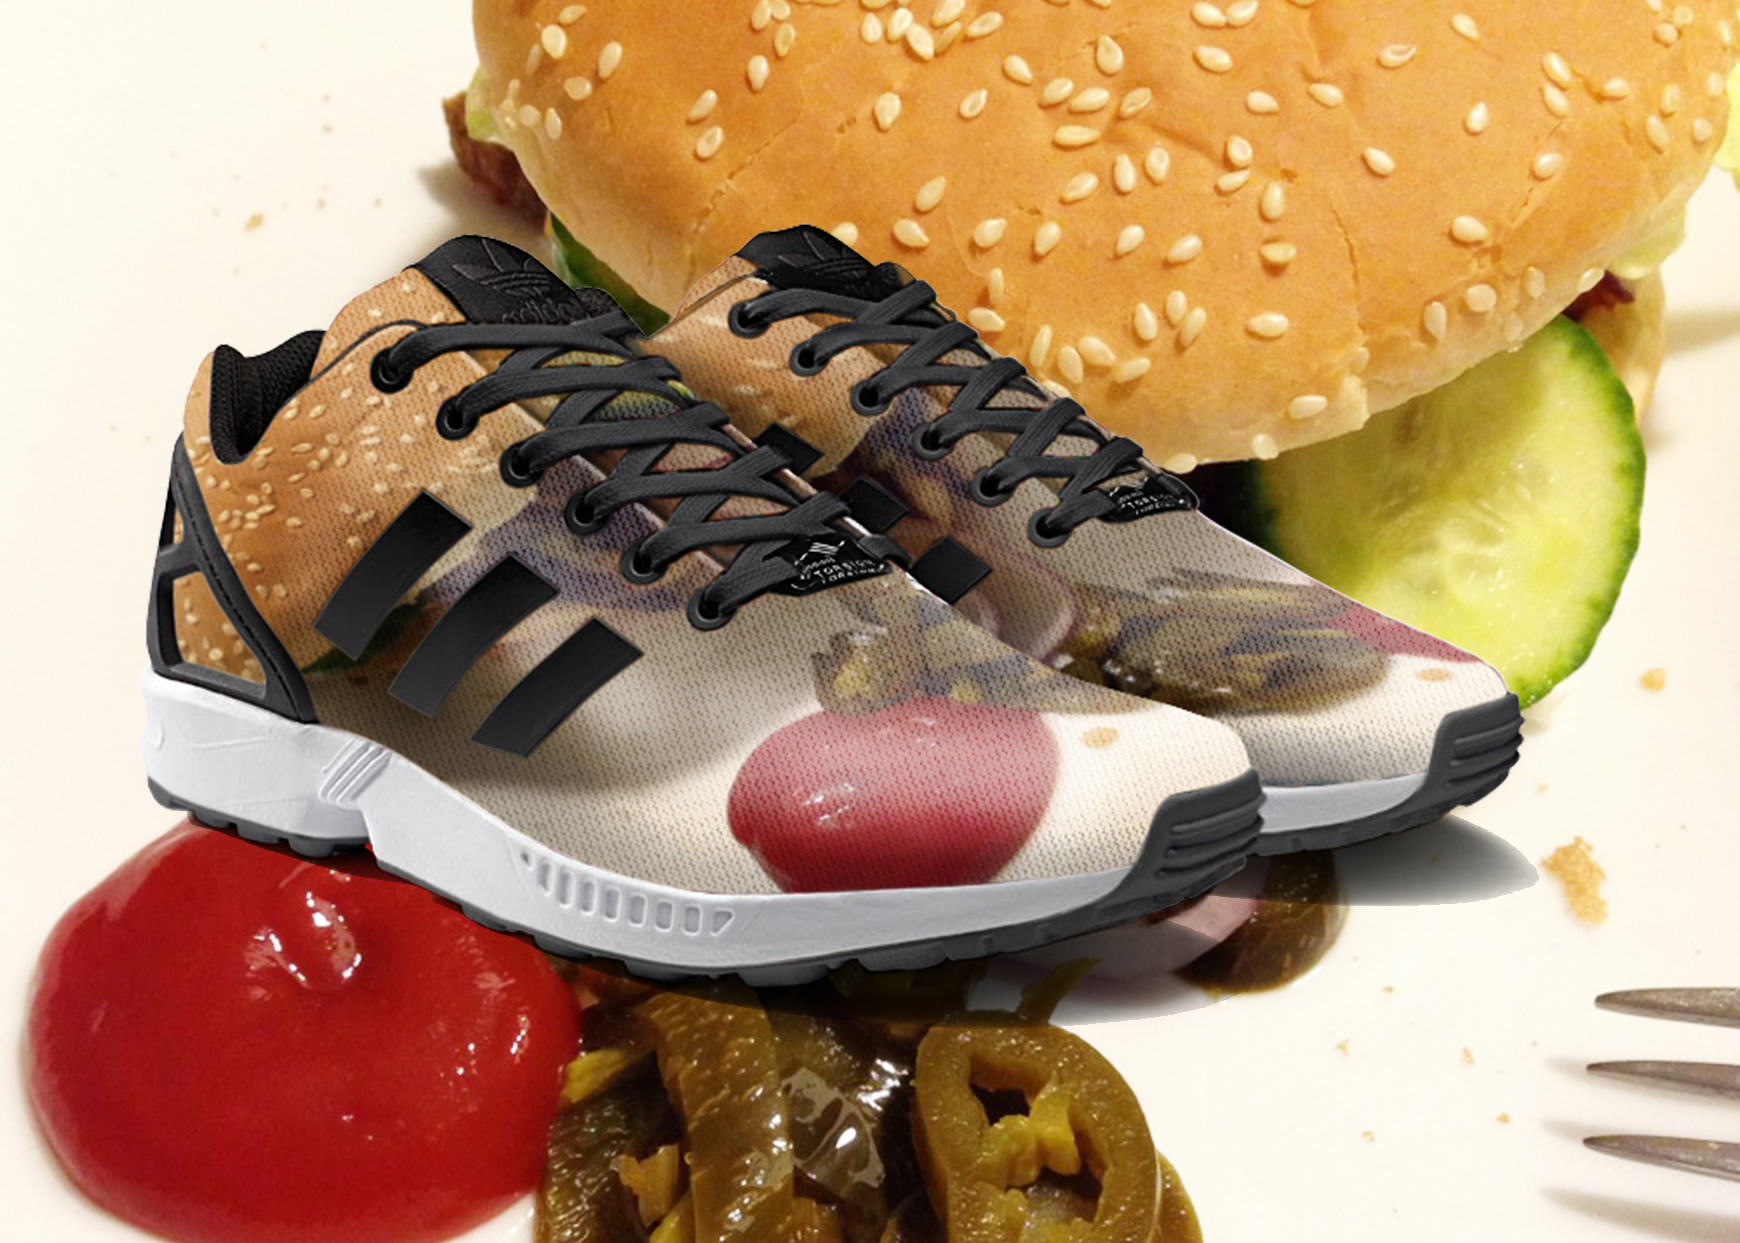 Adidas is letting consumers turn Instagram photos into shoe design